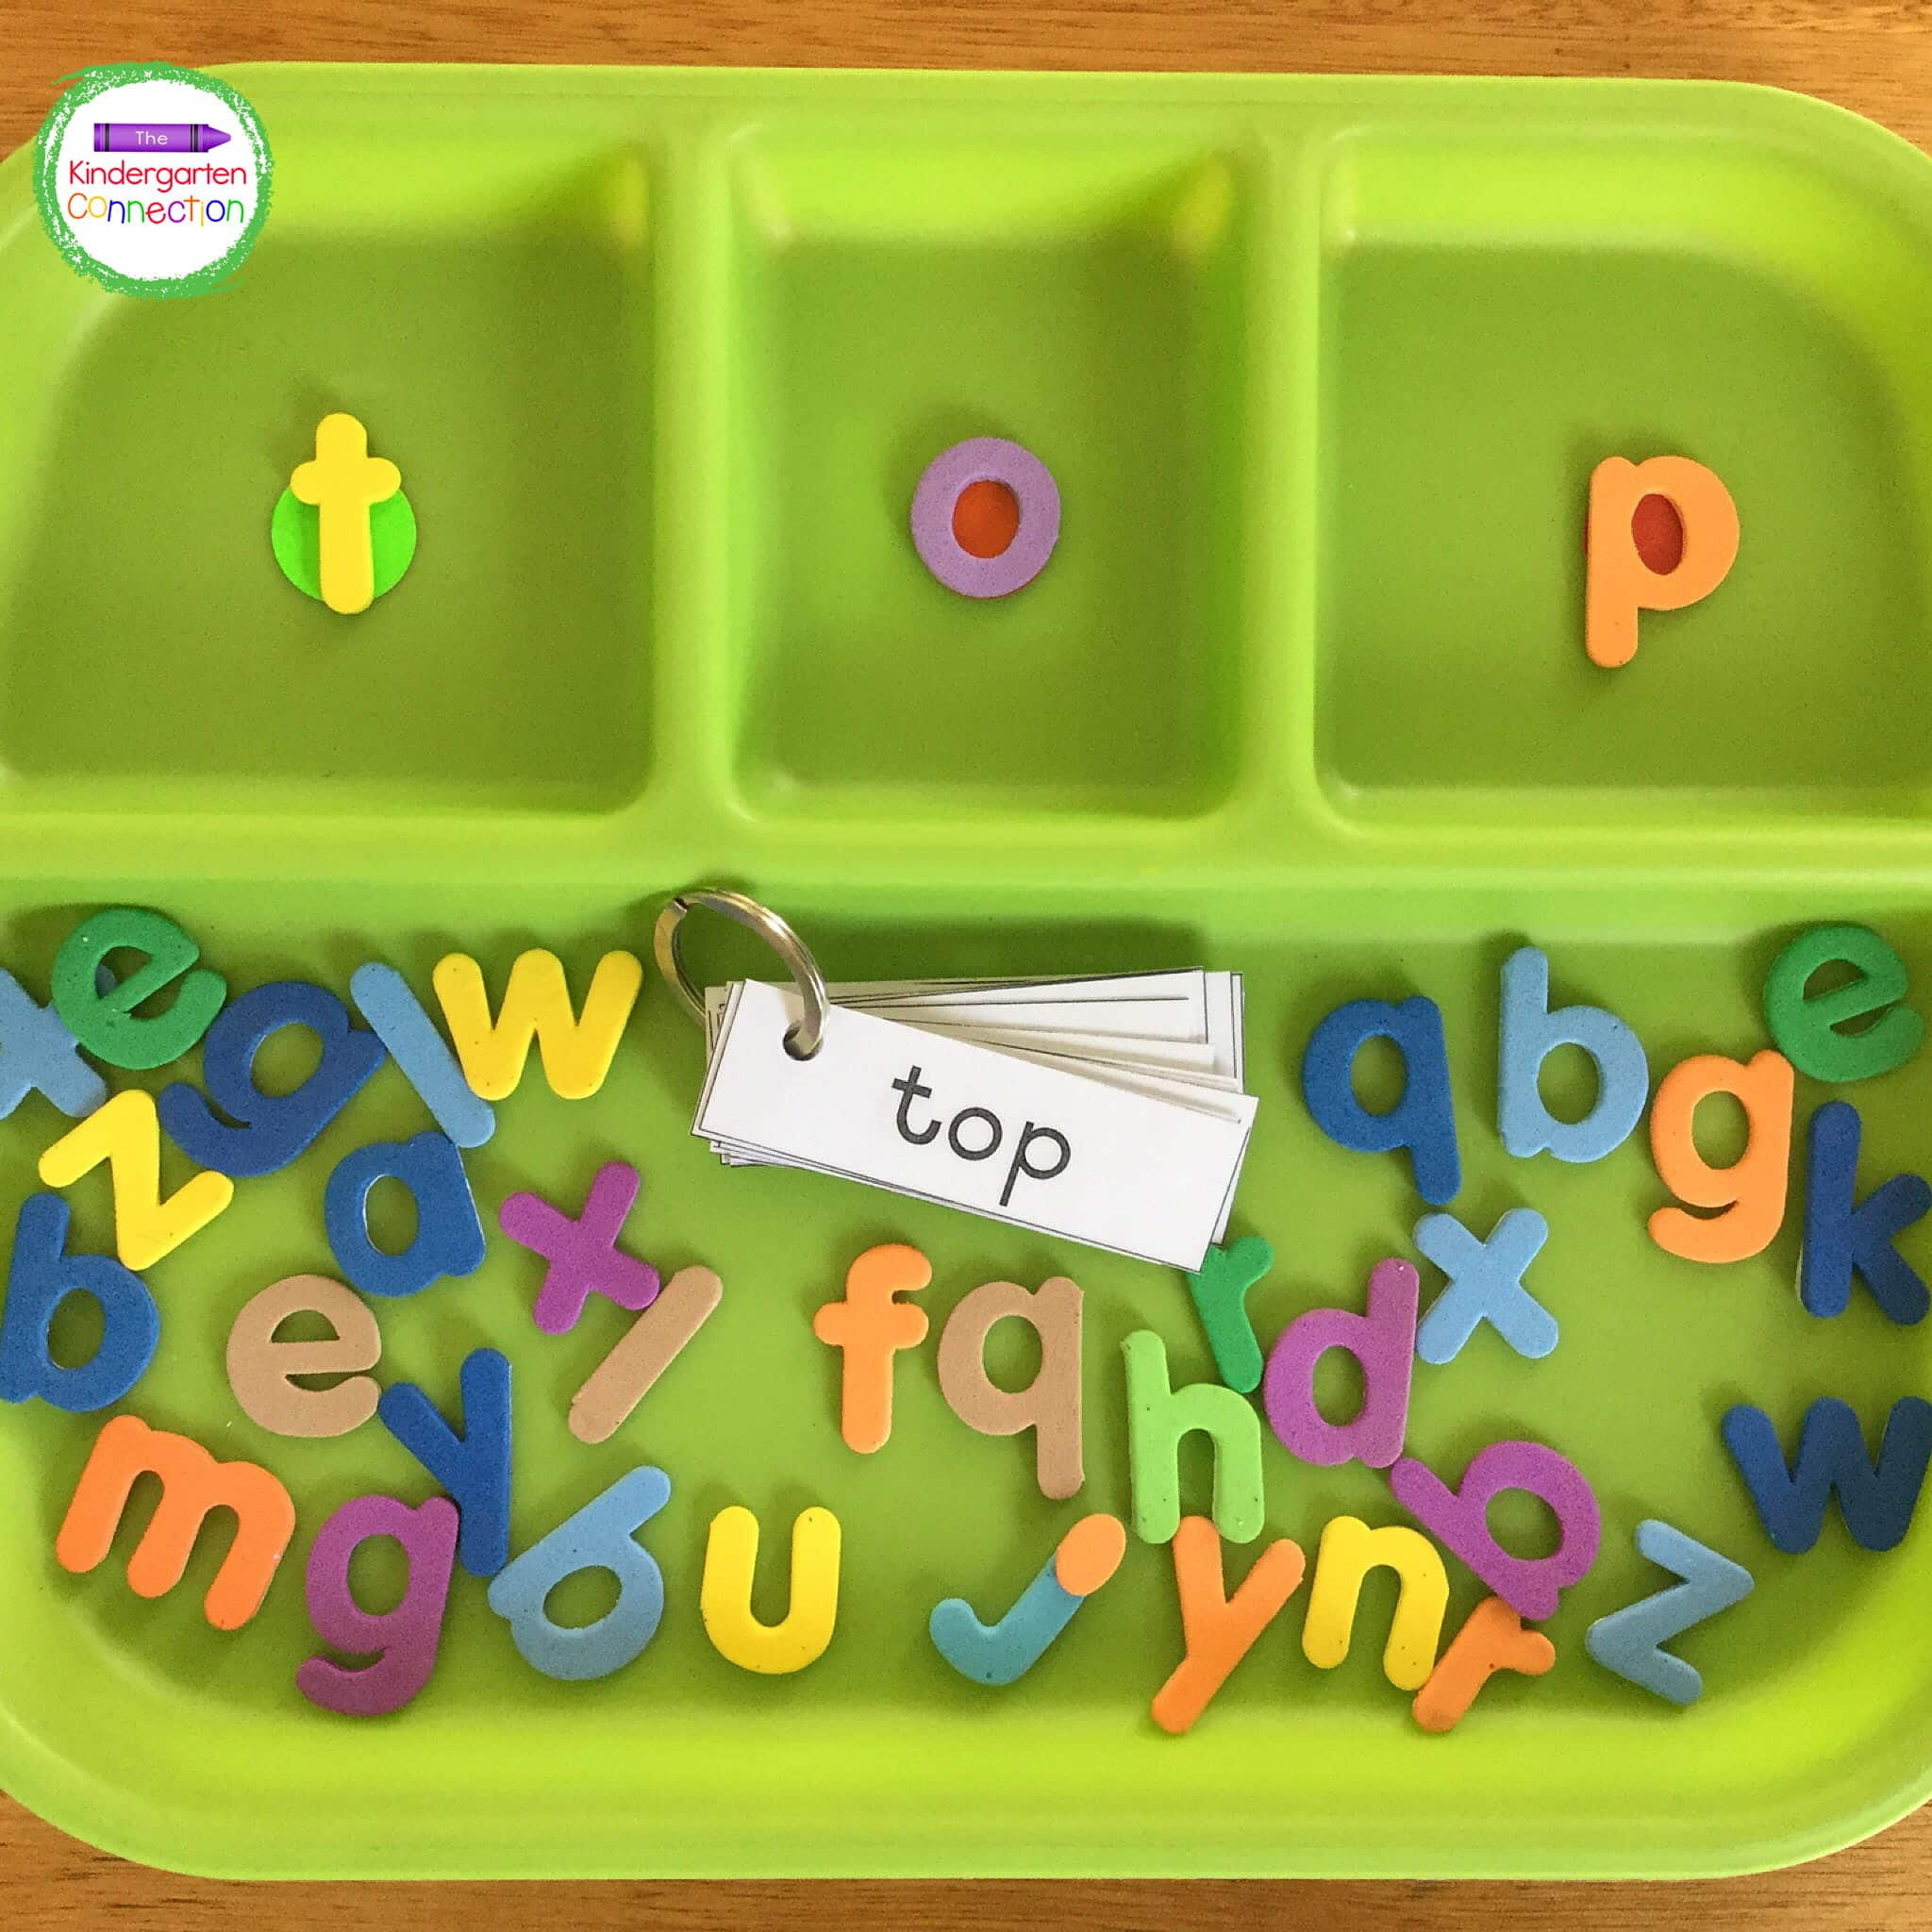 I use simple CVC word cards on a key ring for students to flip through and spell with their letter manipulatives.